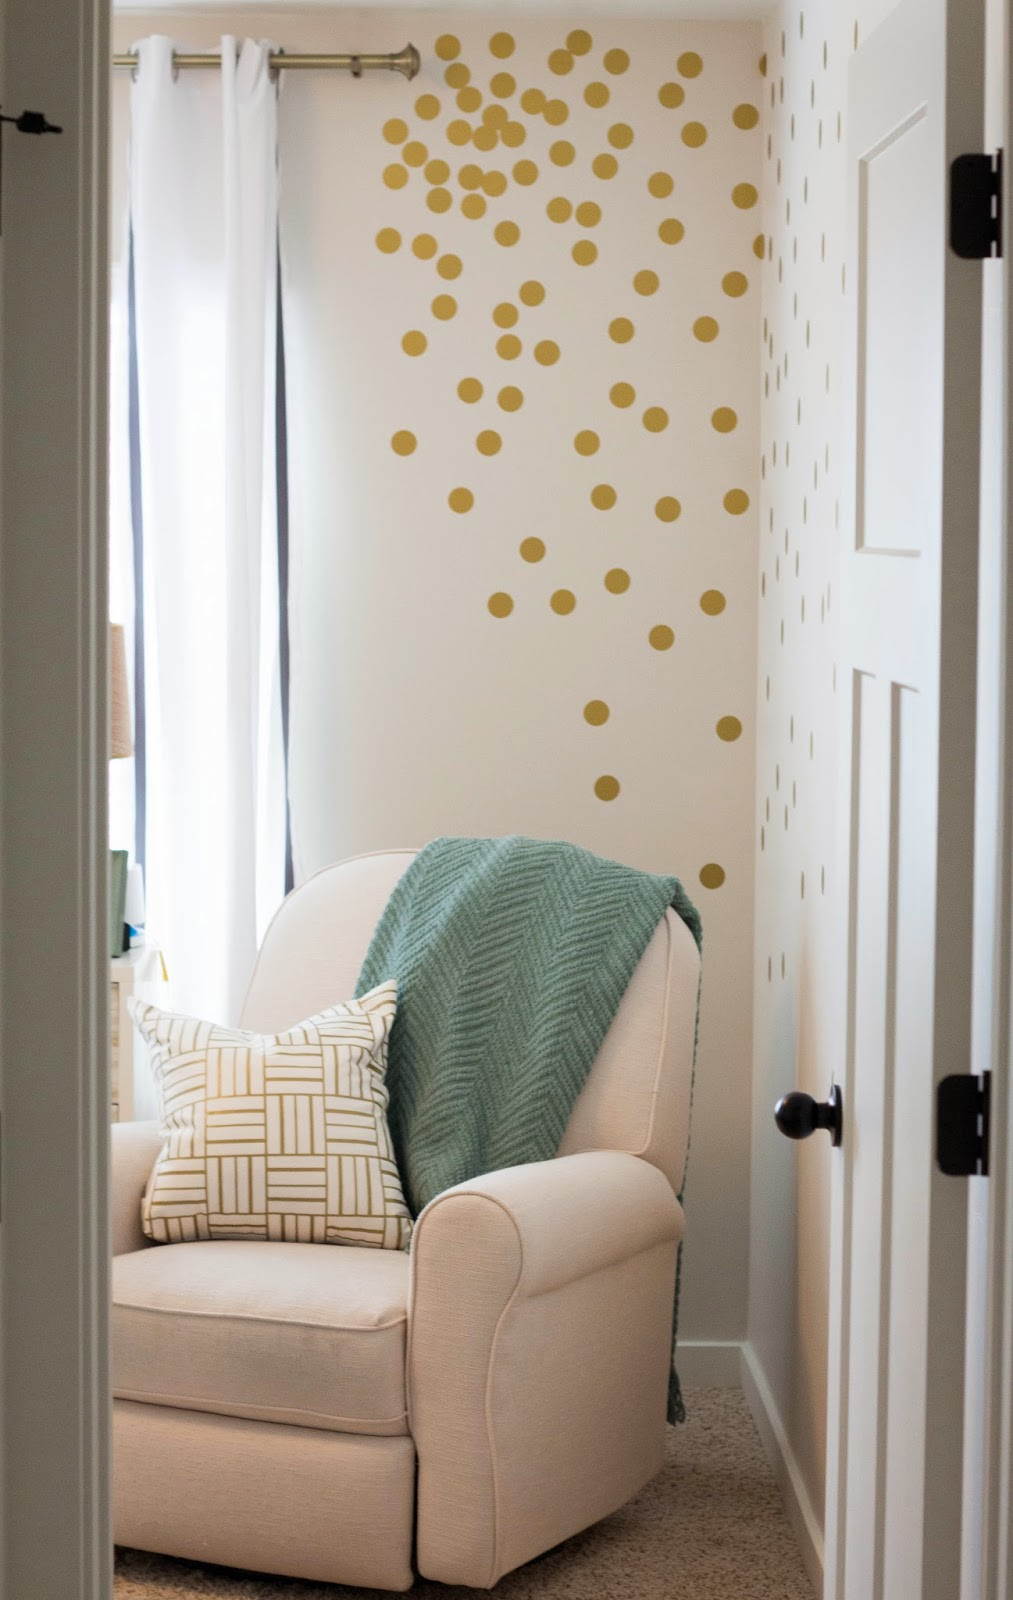 Gold polka dot wall decals in corner